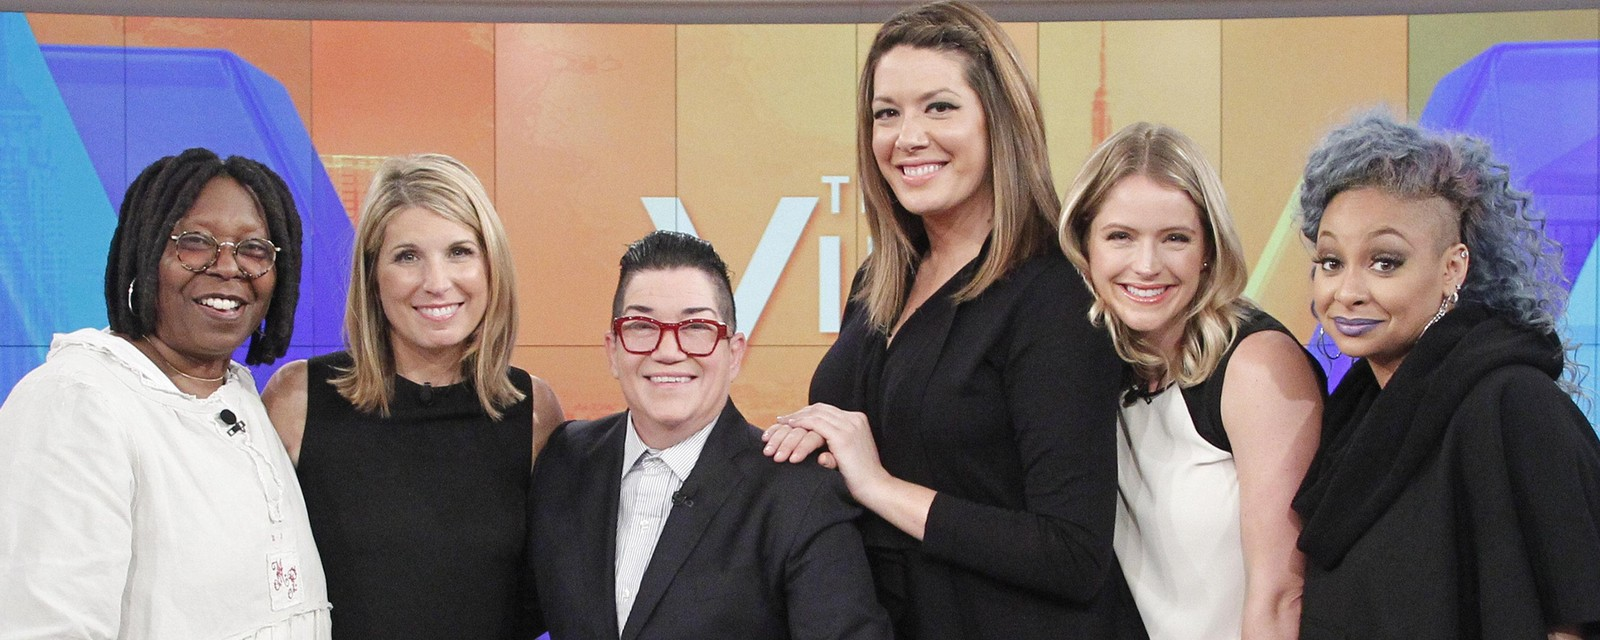 """Millennial Women Are Having Better Sex, """"Orange Is the New Black"""" Actress Lea DeLaria Announces Wedding Date and Model Mark Reay Talks about Documentary """"Homme Less"""" on """"The View""""Millennial Women Are Having Better Sex, Orange Is the New Black Actress Lea DeLaria Announces Wedding Date and Model Mark Reay Talks about Documentary Homme Less on The View - The View - 웹"""